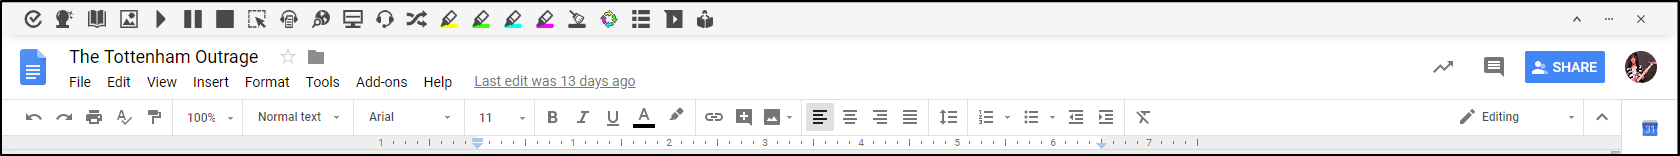 Read&Write for Google Chrome Toolbar Tab Extended